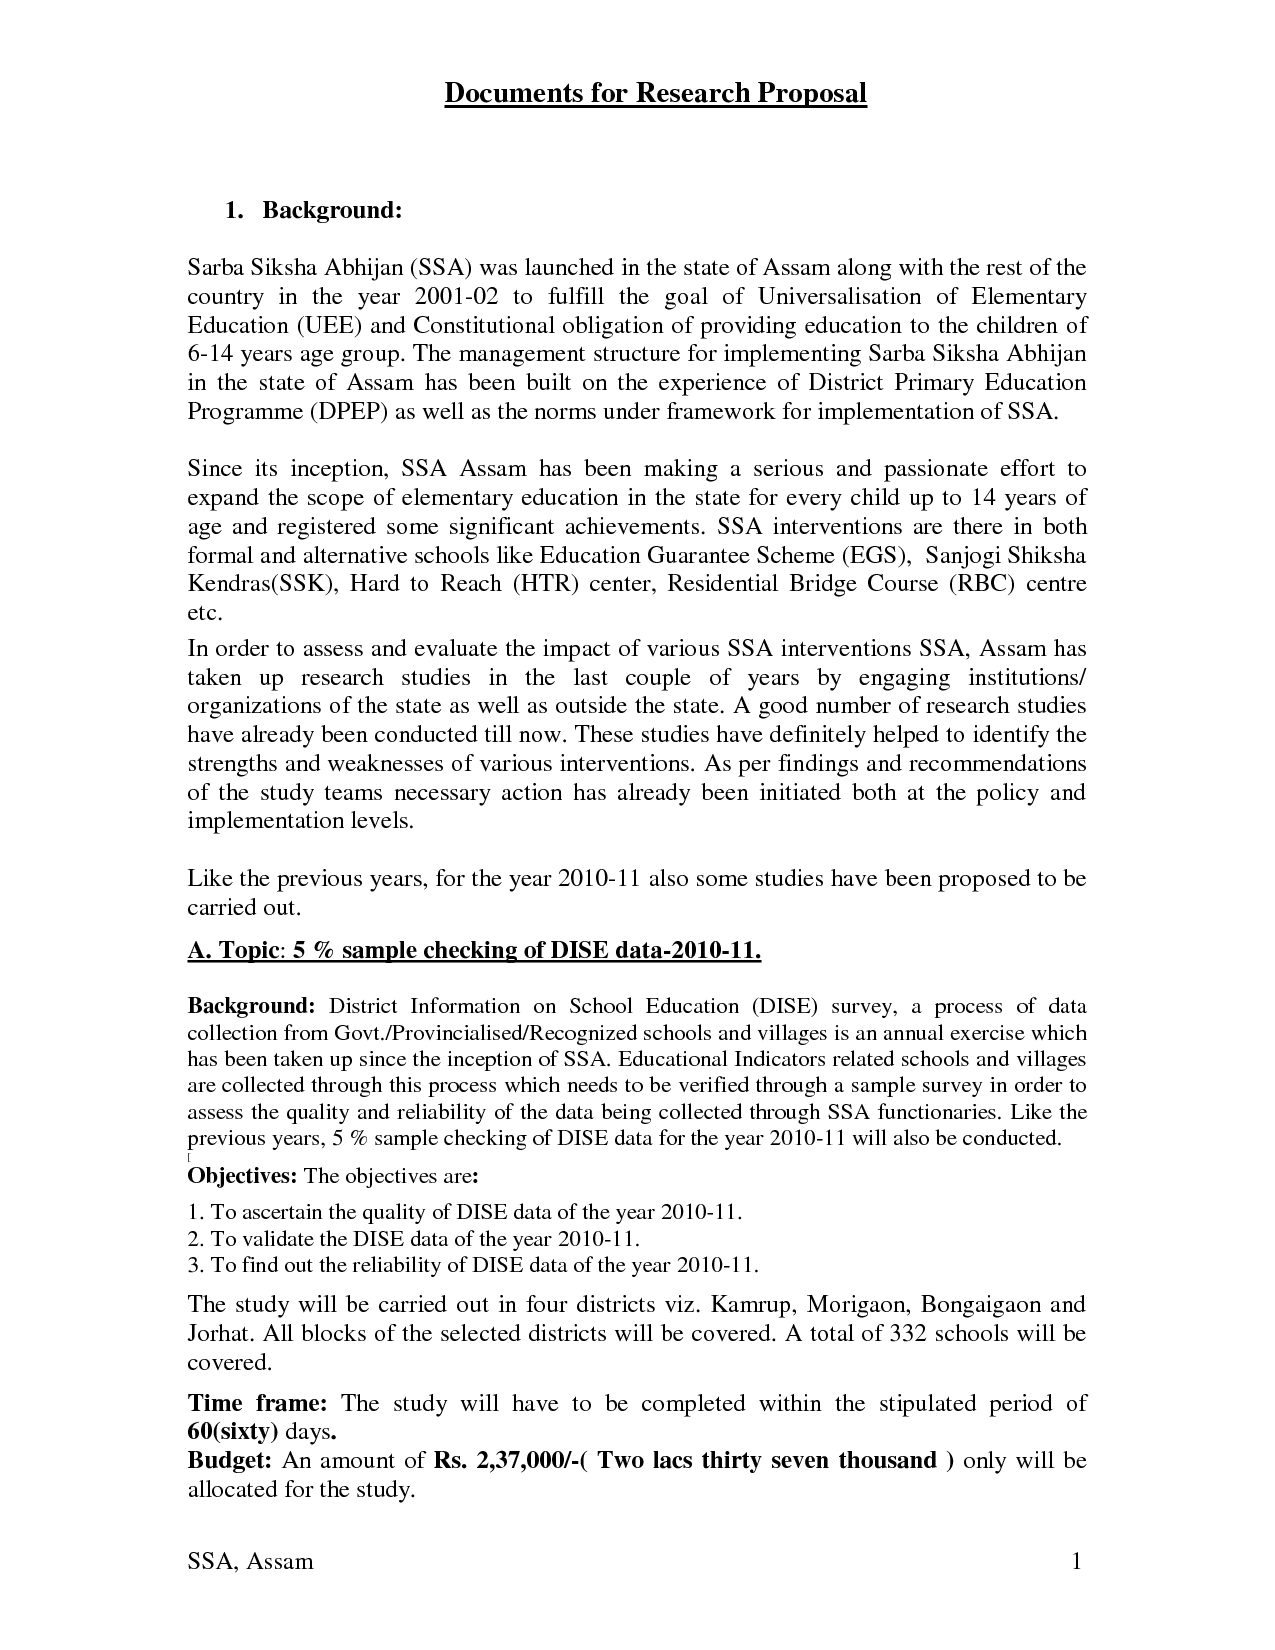 012 Research Paper Proposal Sample Topic 501313 Awesome Plan Template Mla Format Full